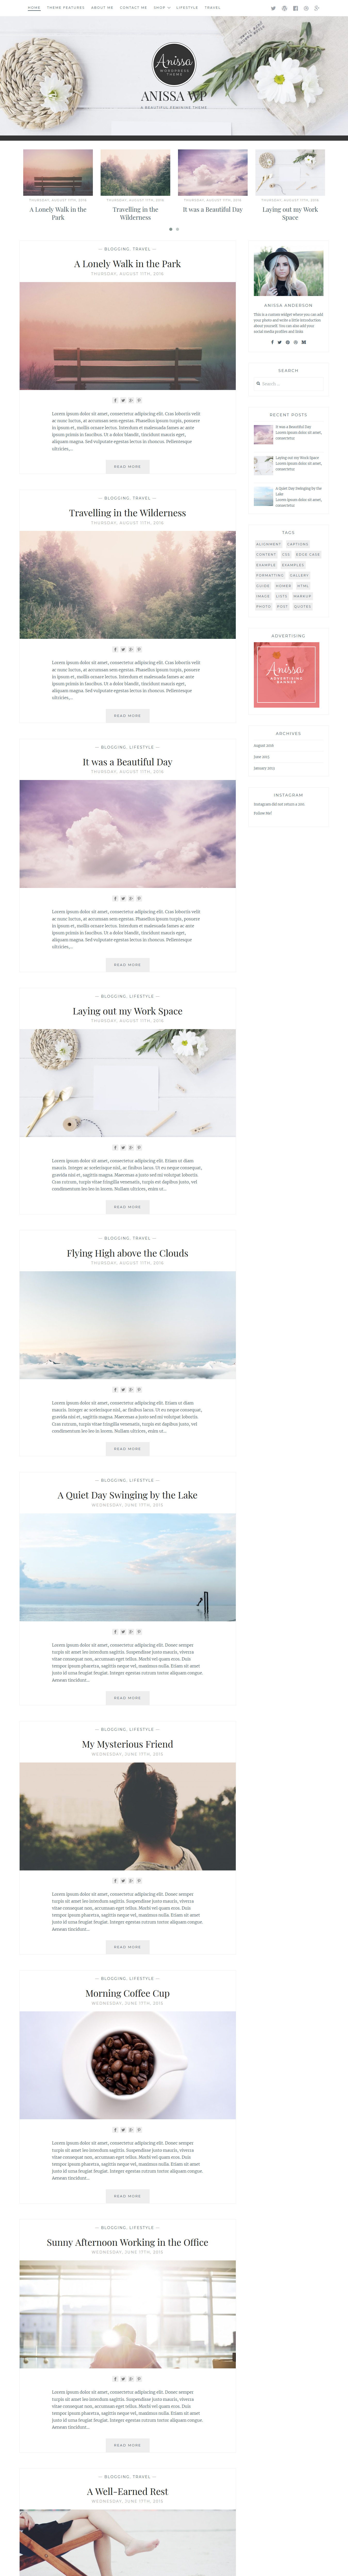 anissa best free feminine wordpress theme - 10+ Best Free Feminine WordPress Themes